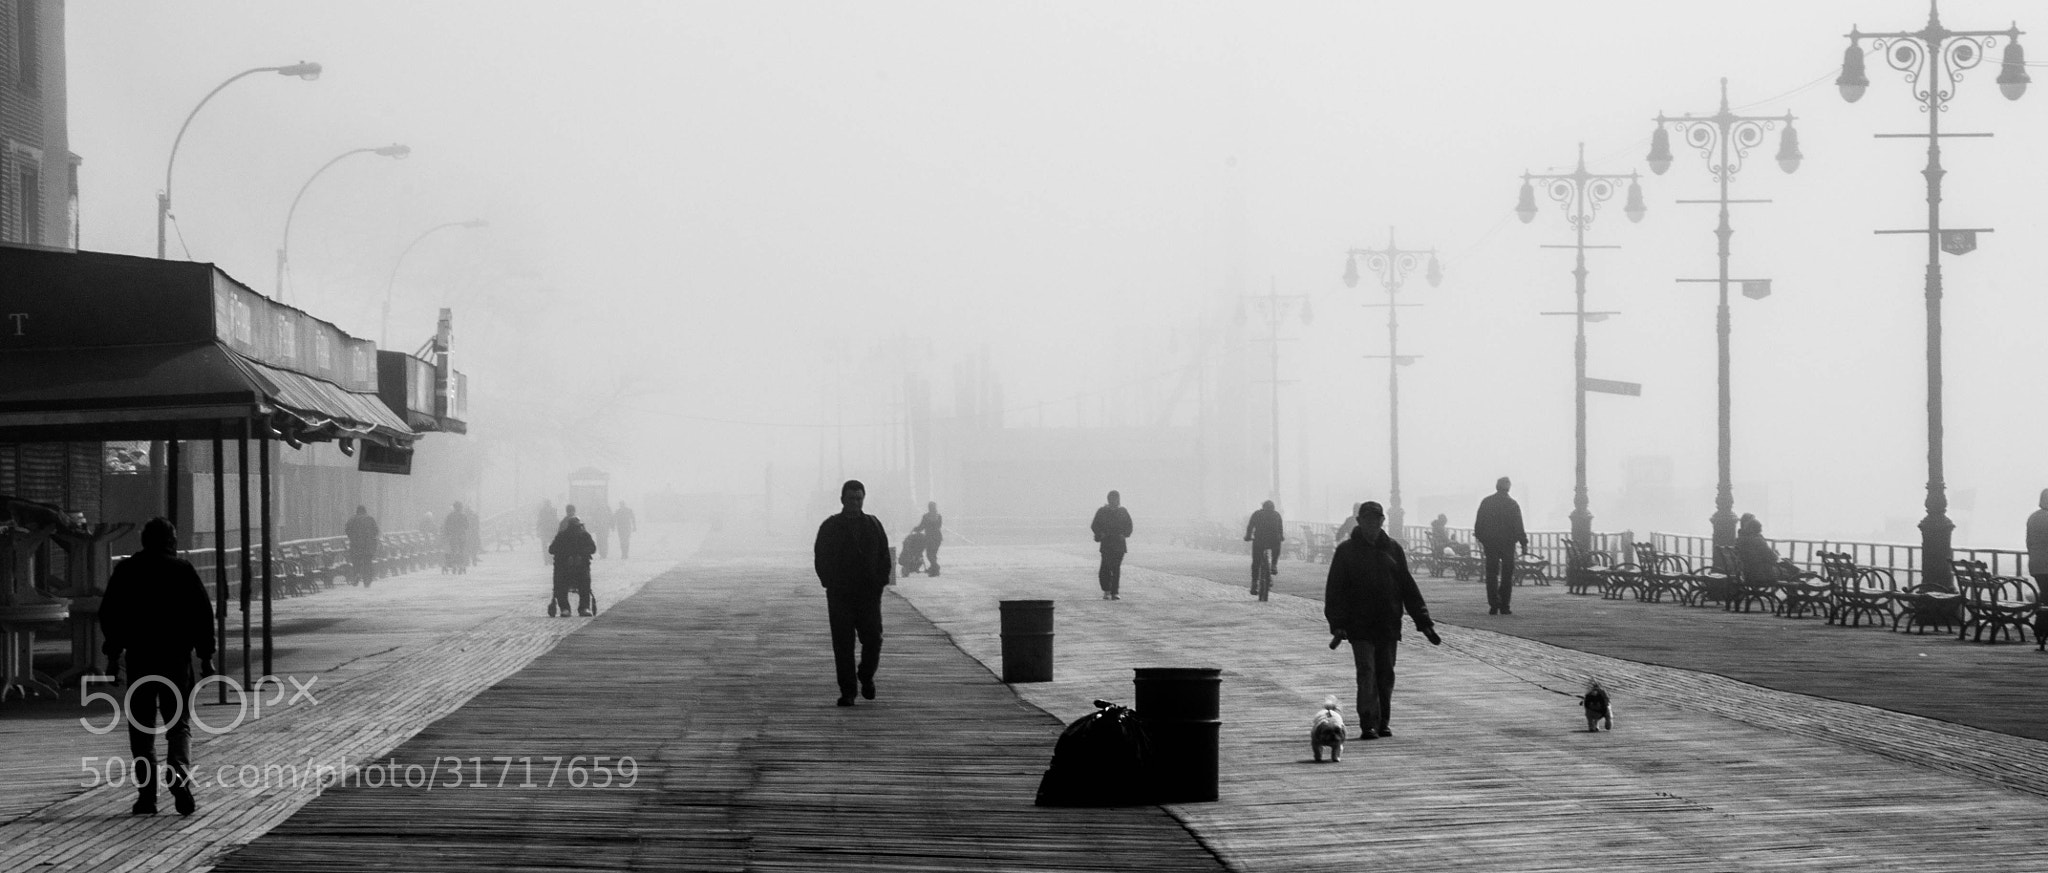 Photograph Fog by Rostislaff Kuznetsoff on 500px